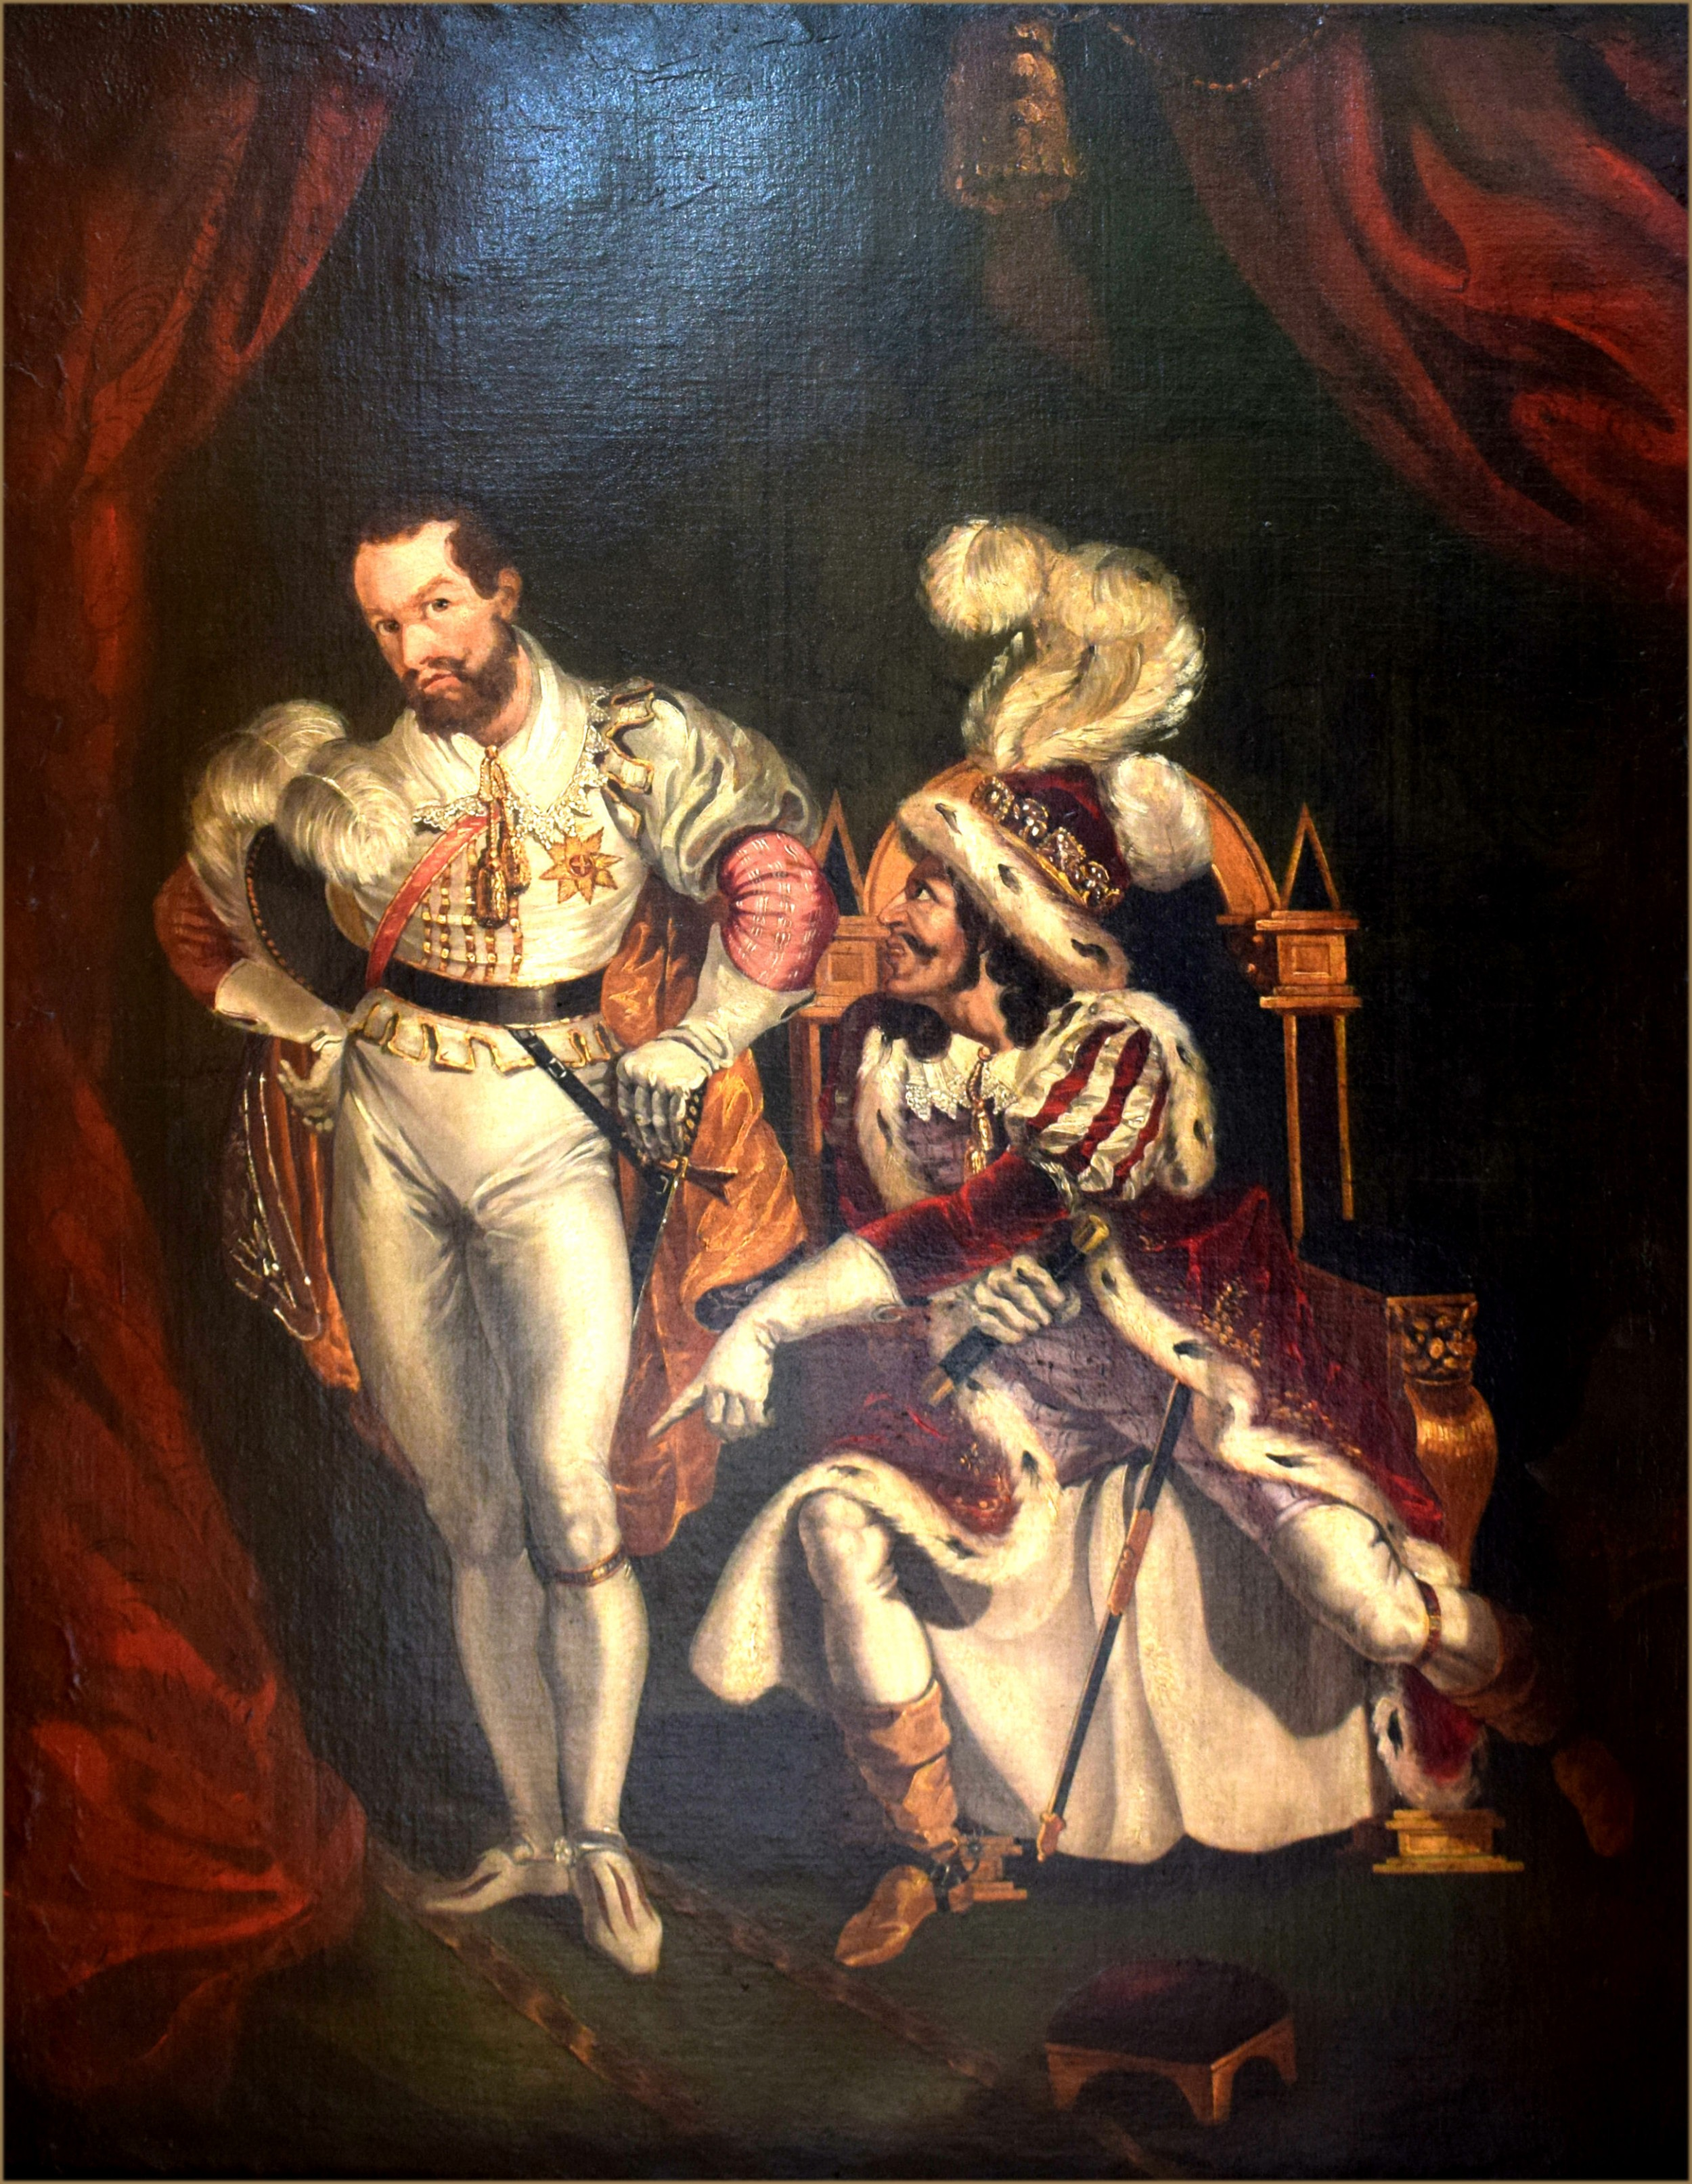 george clint 1770 854portrait of edmund kean 17871833 as richard iii with the duke of buckingham